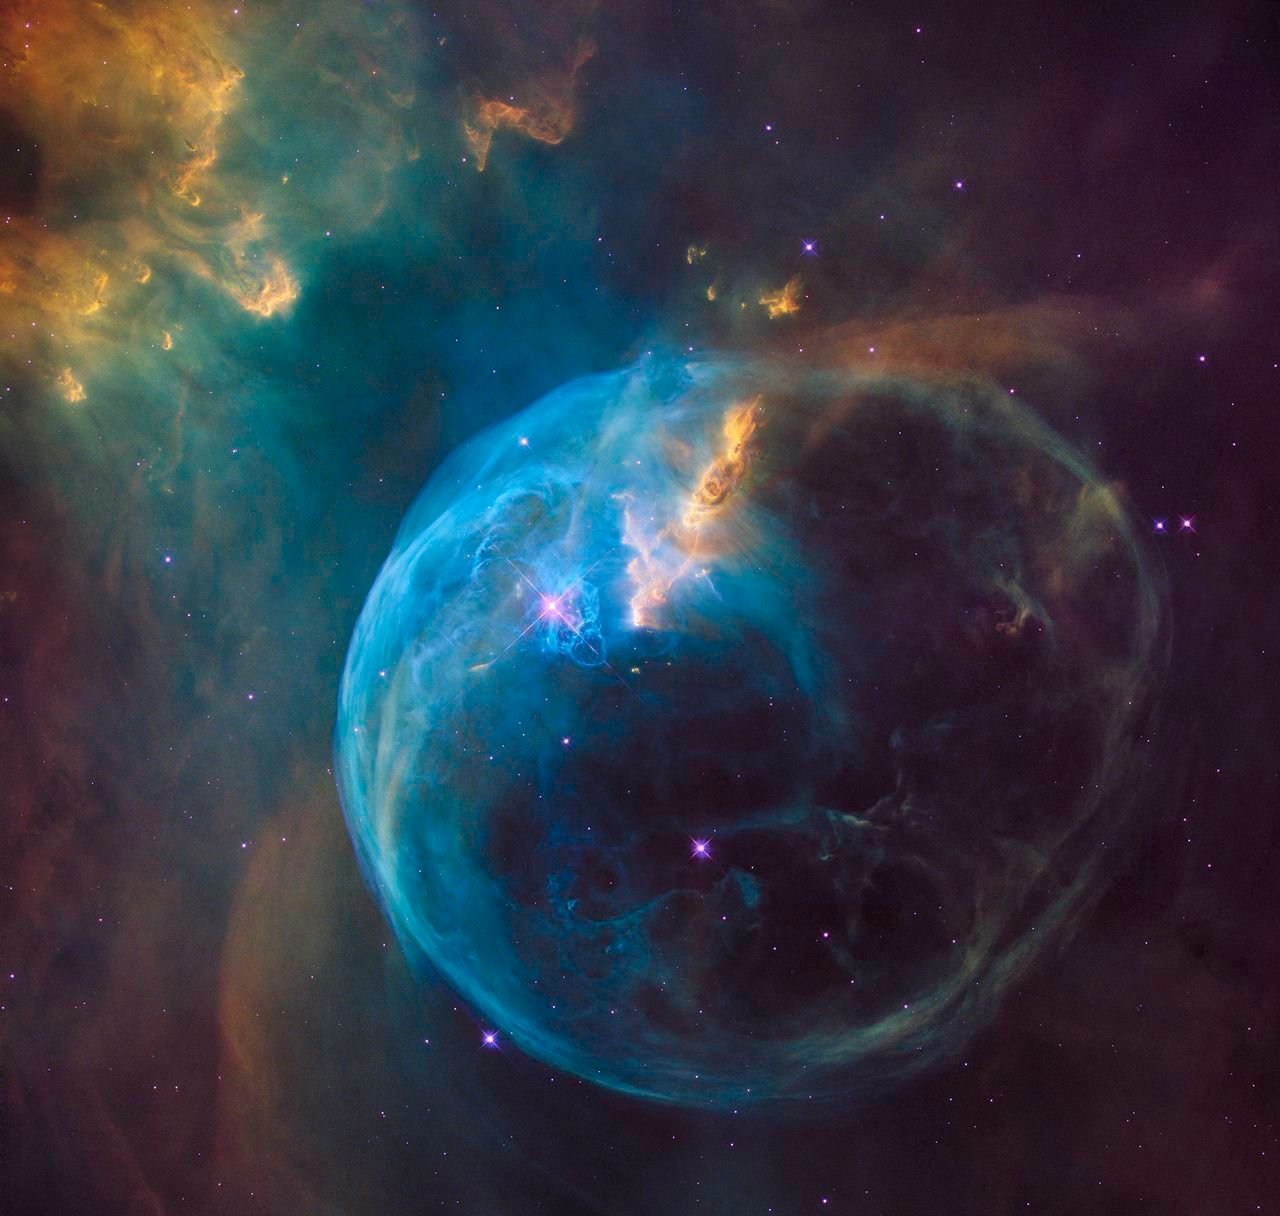 A spectacular new view of the Bubble Nebula to celebrate Hubble's 26th year in space.